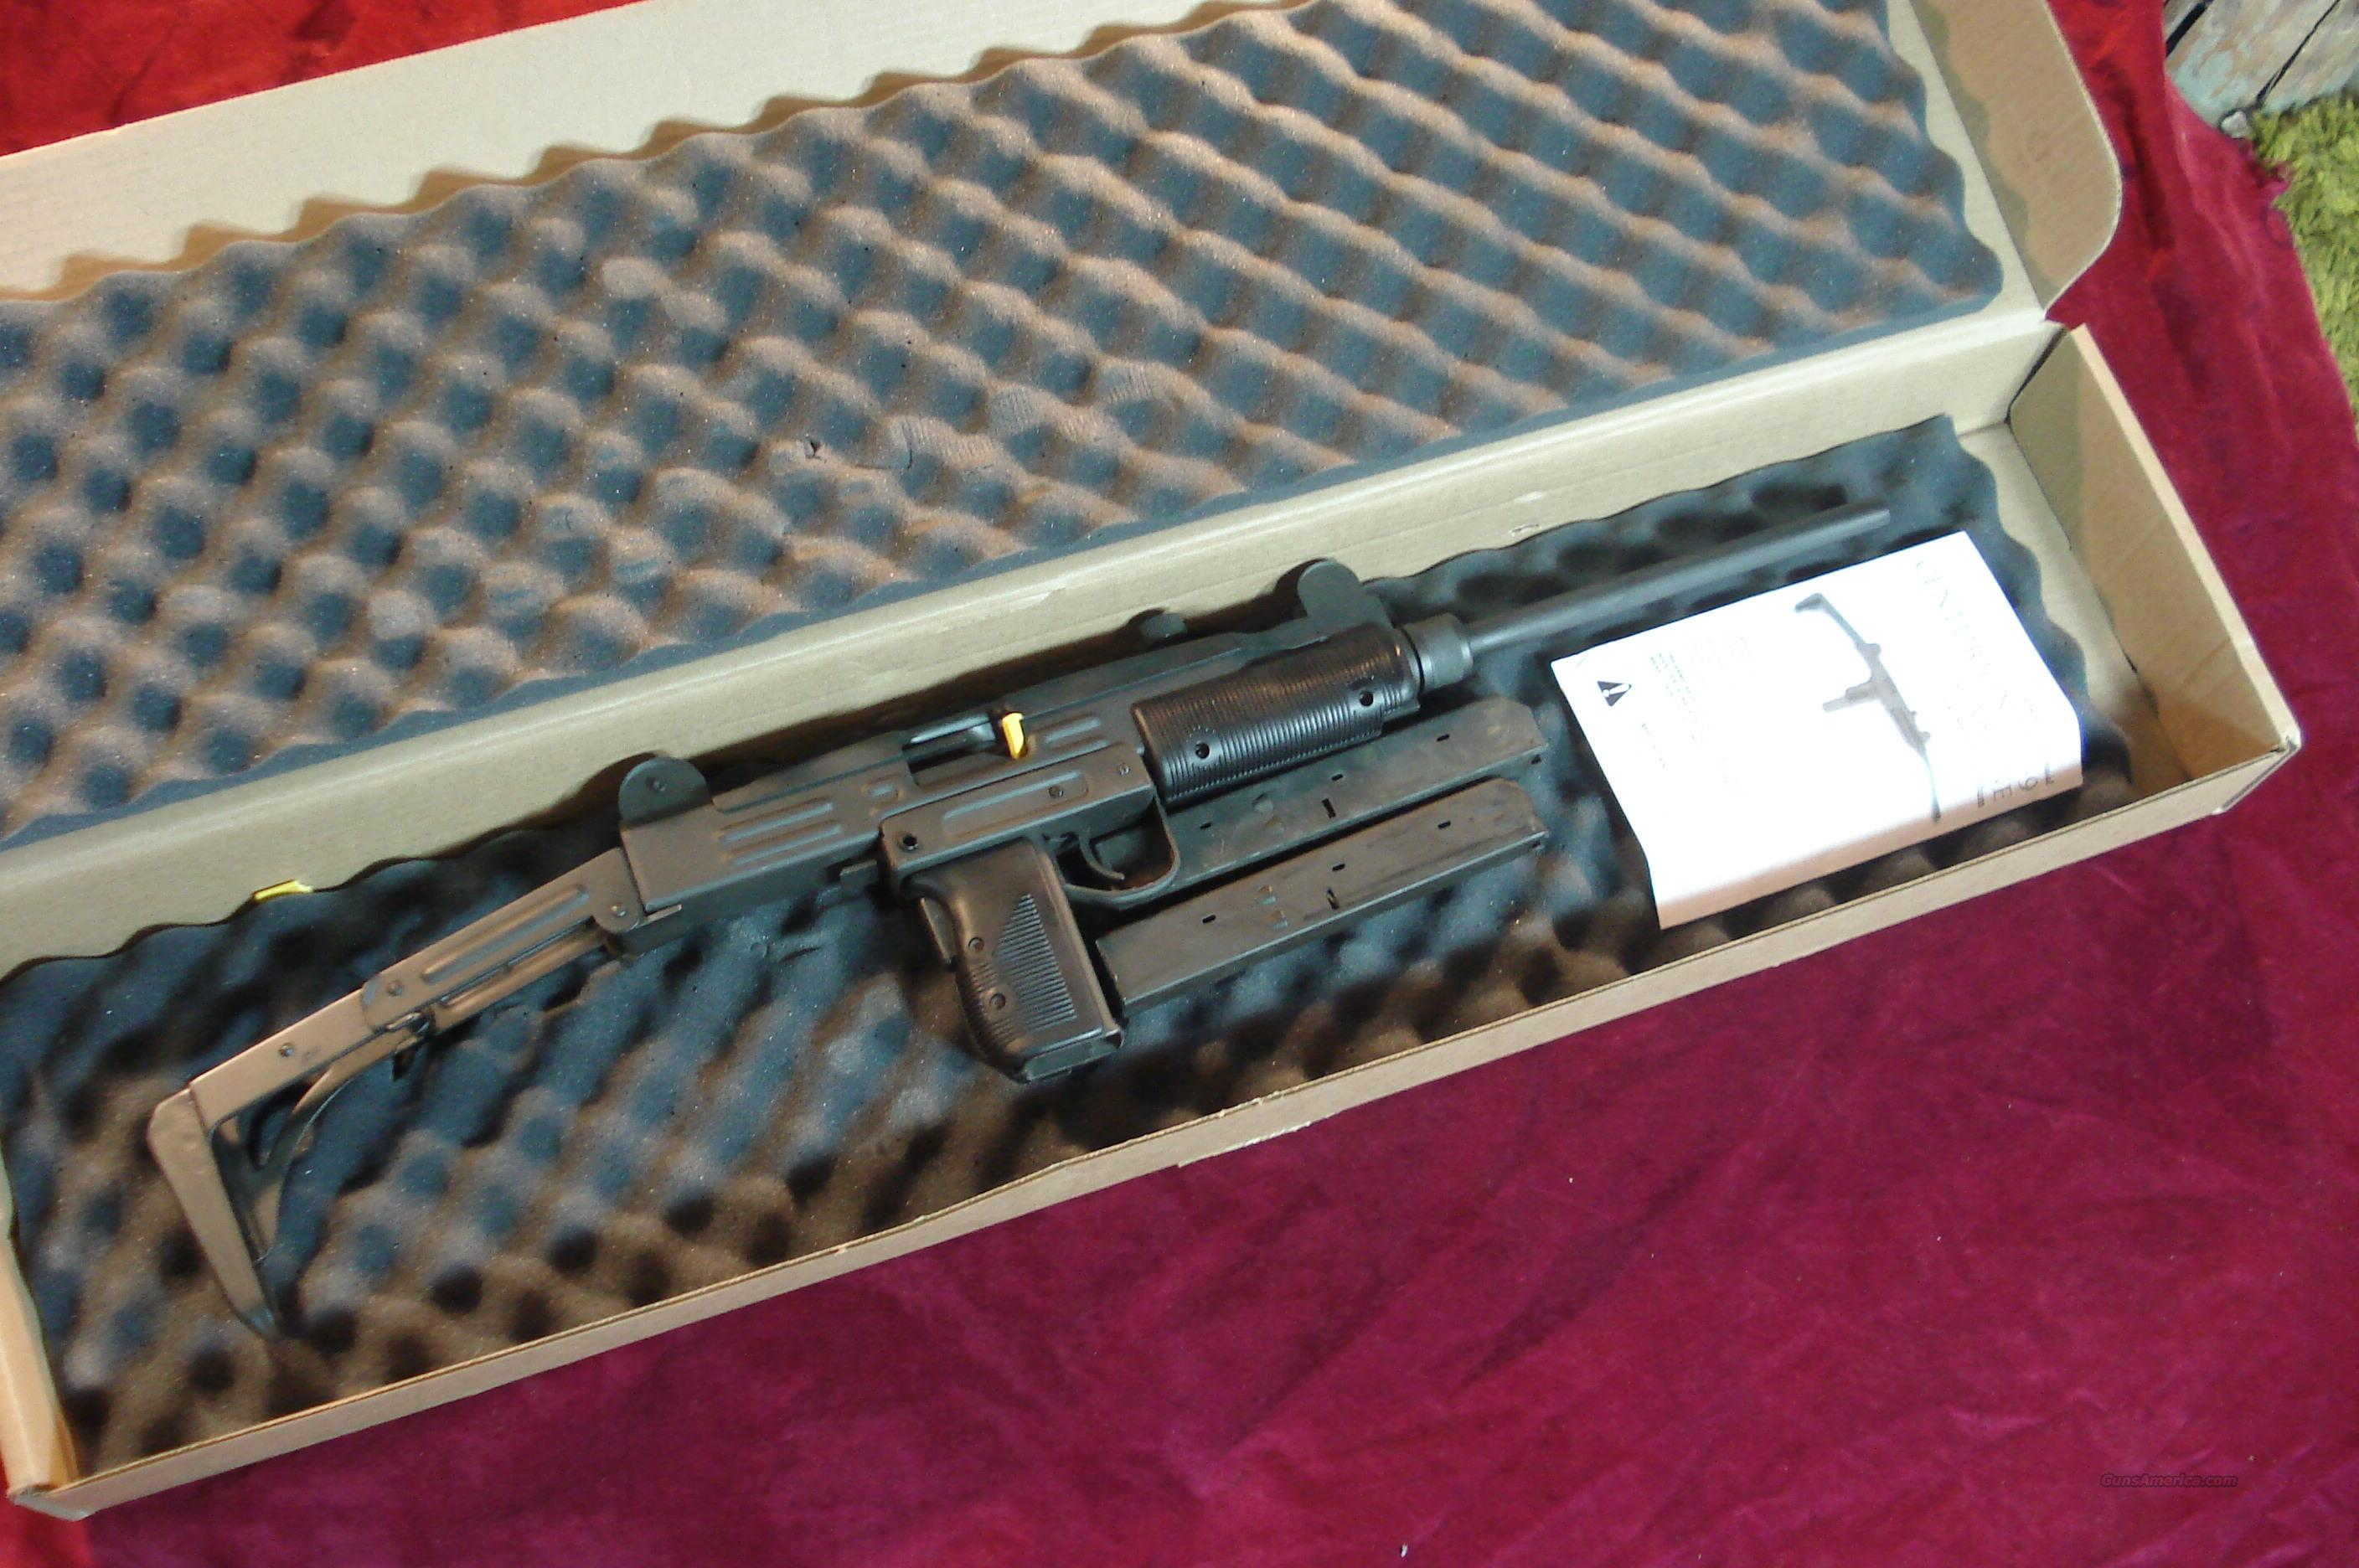 CENTURY INT'L UC-9 9MM UZI CARBINE NEW  Guns > Rifles > Century International Arms - Rifles > Rifles